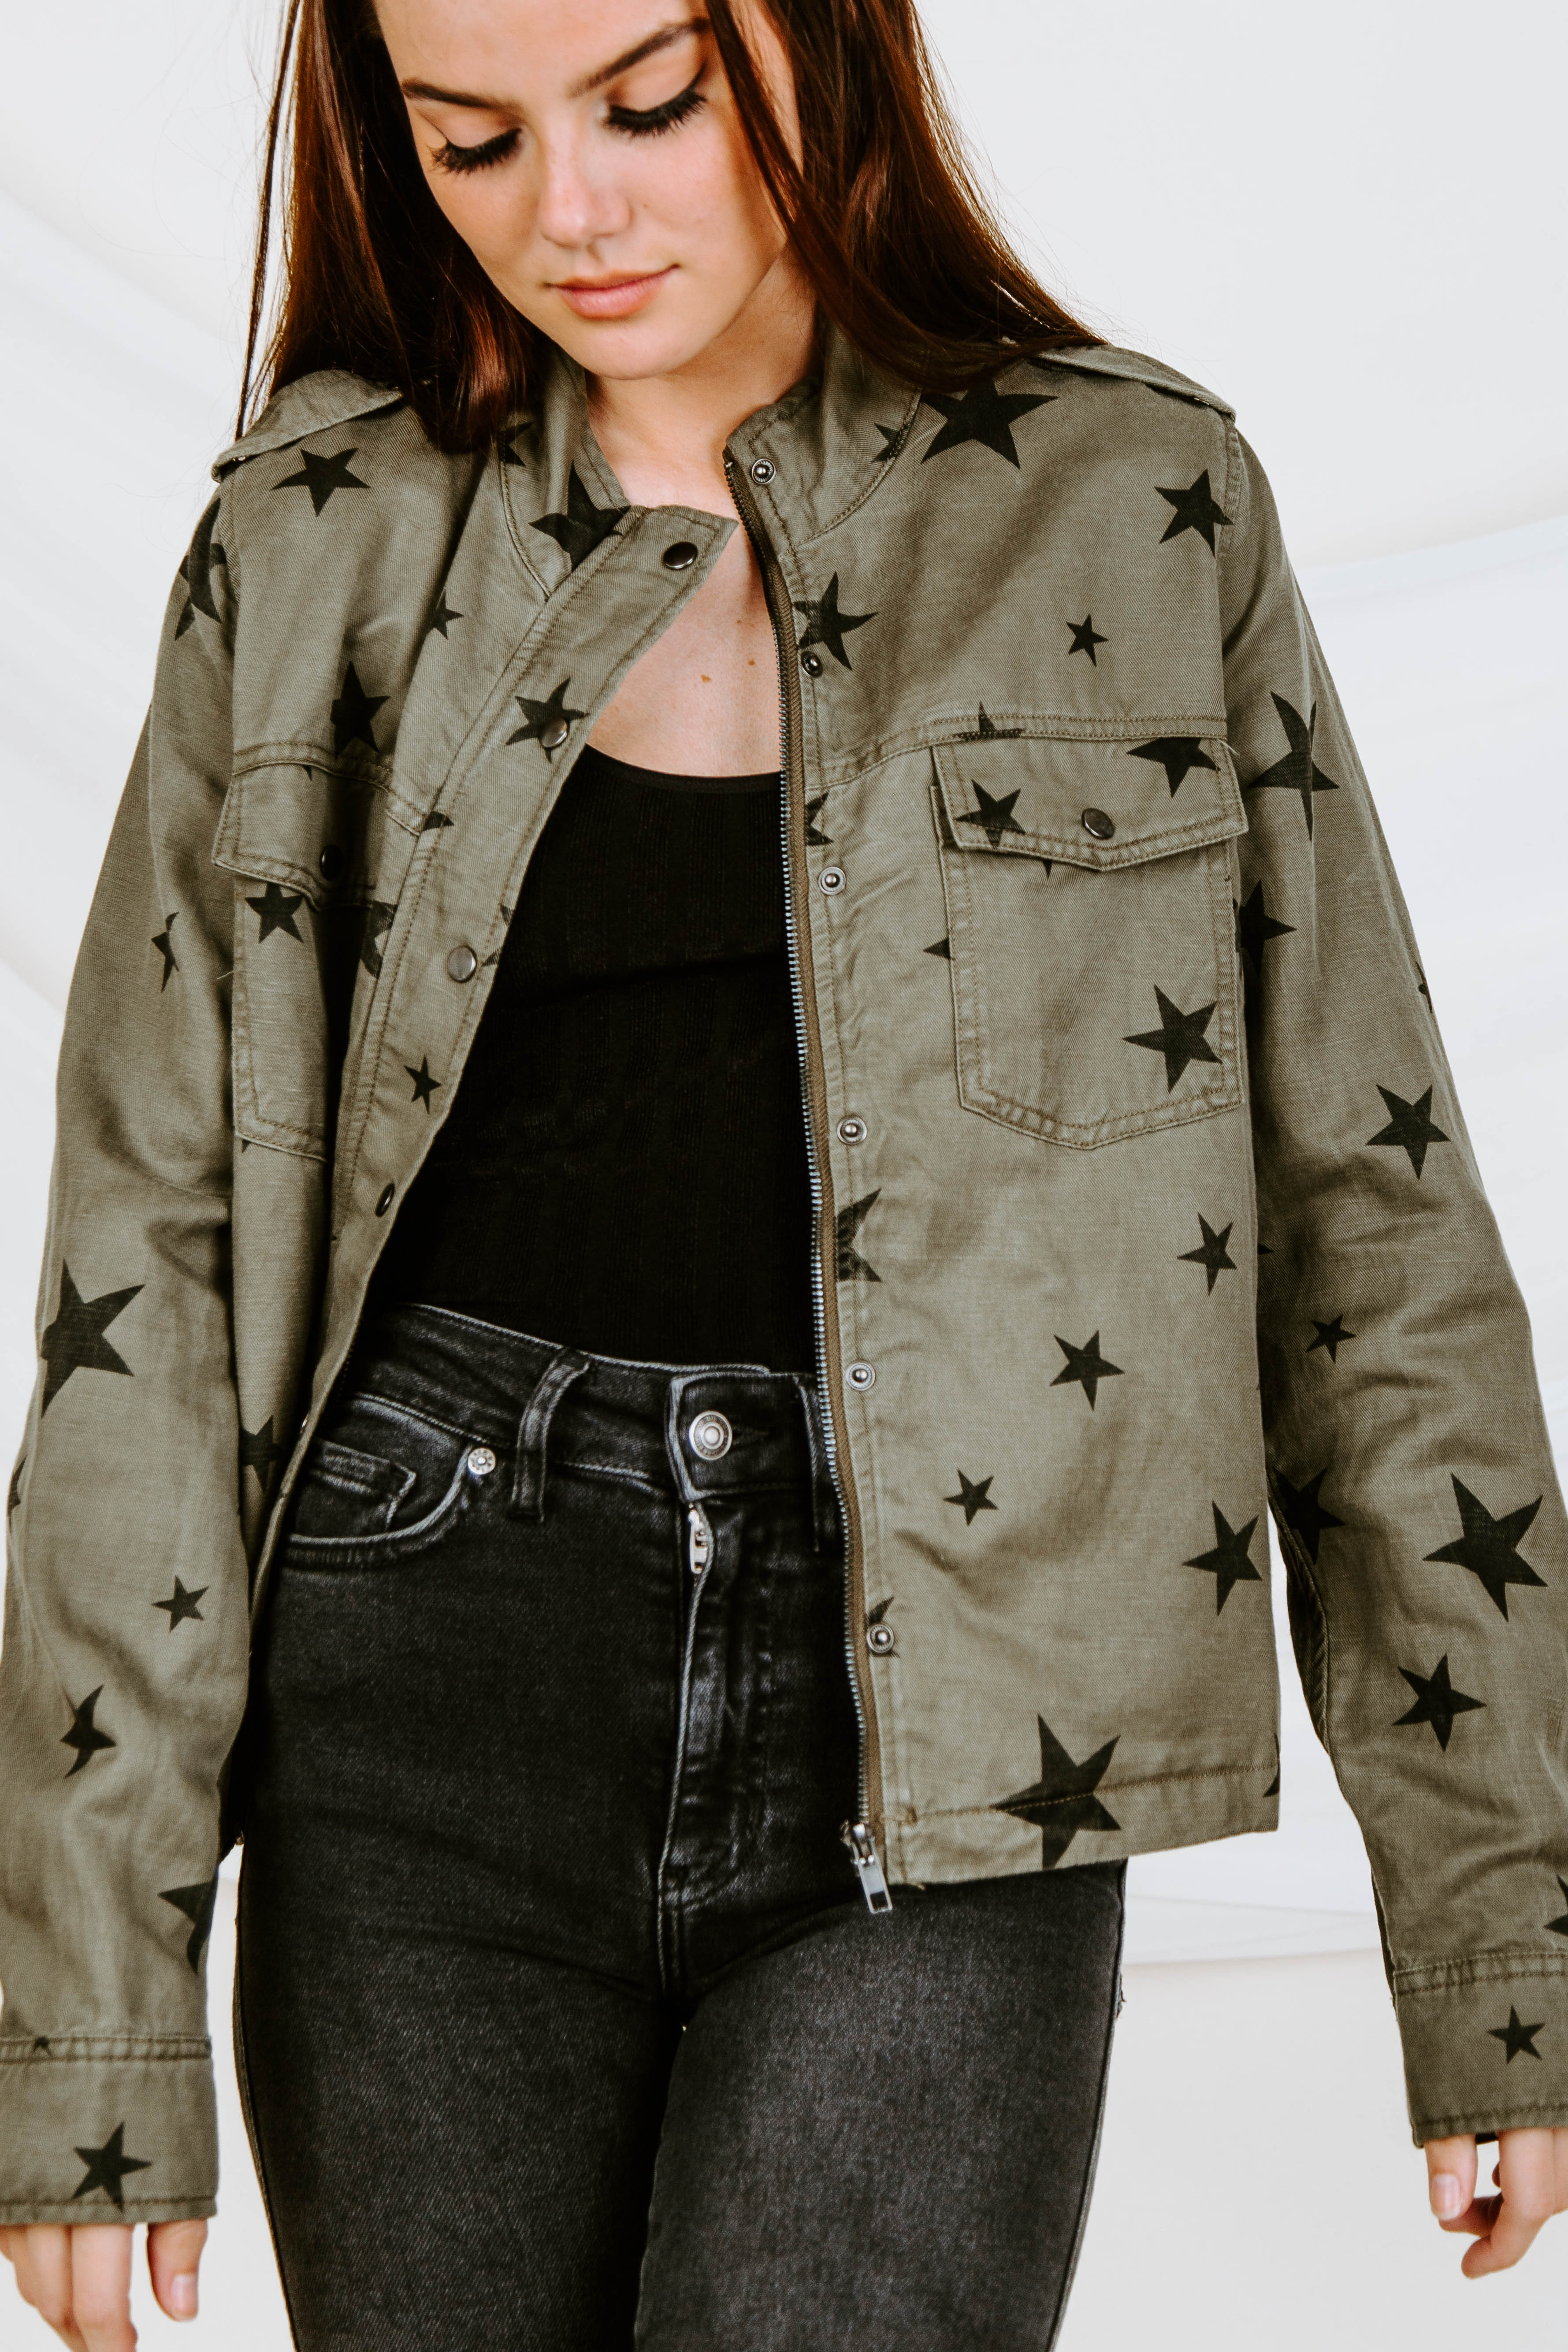 Starred Up Military Jacket